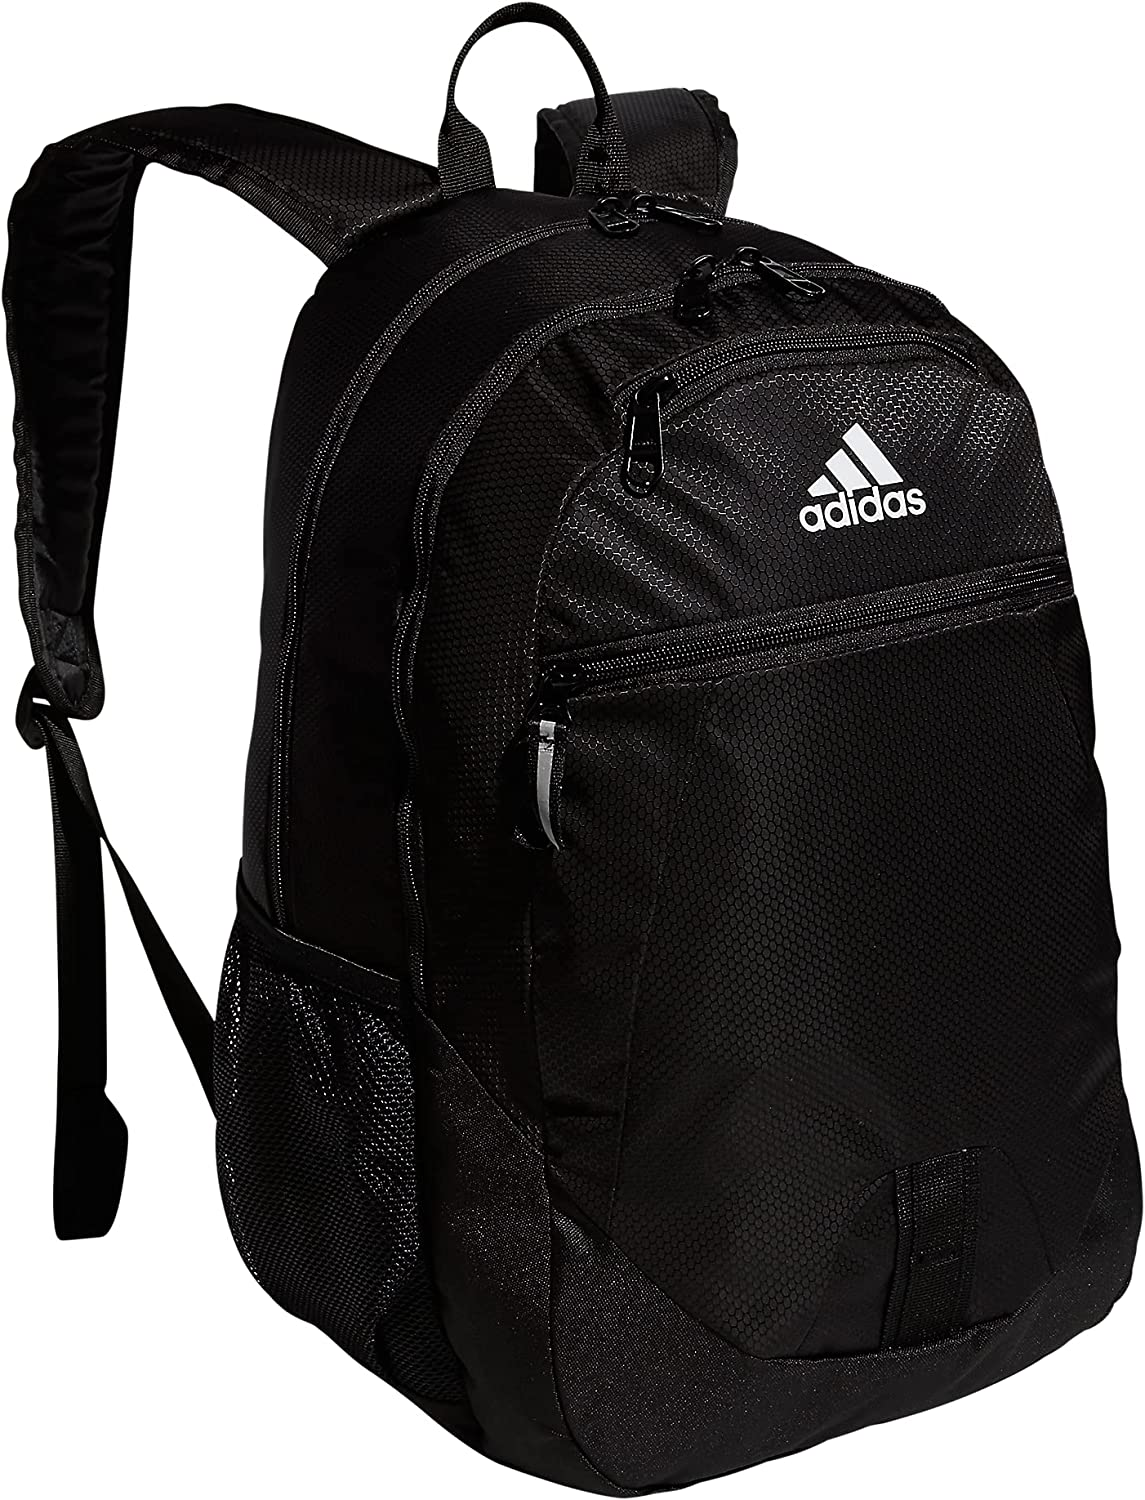 El Paso Mall adidas Foundation Backpack High order Black White Size One